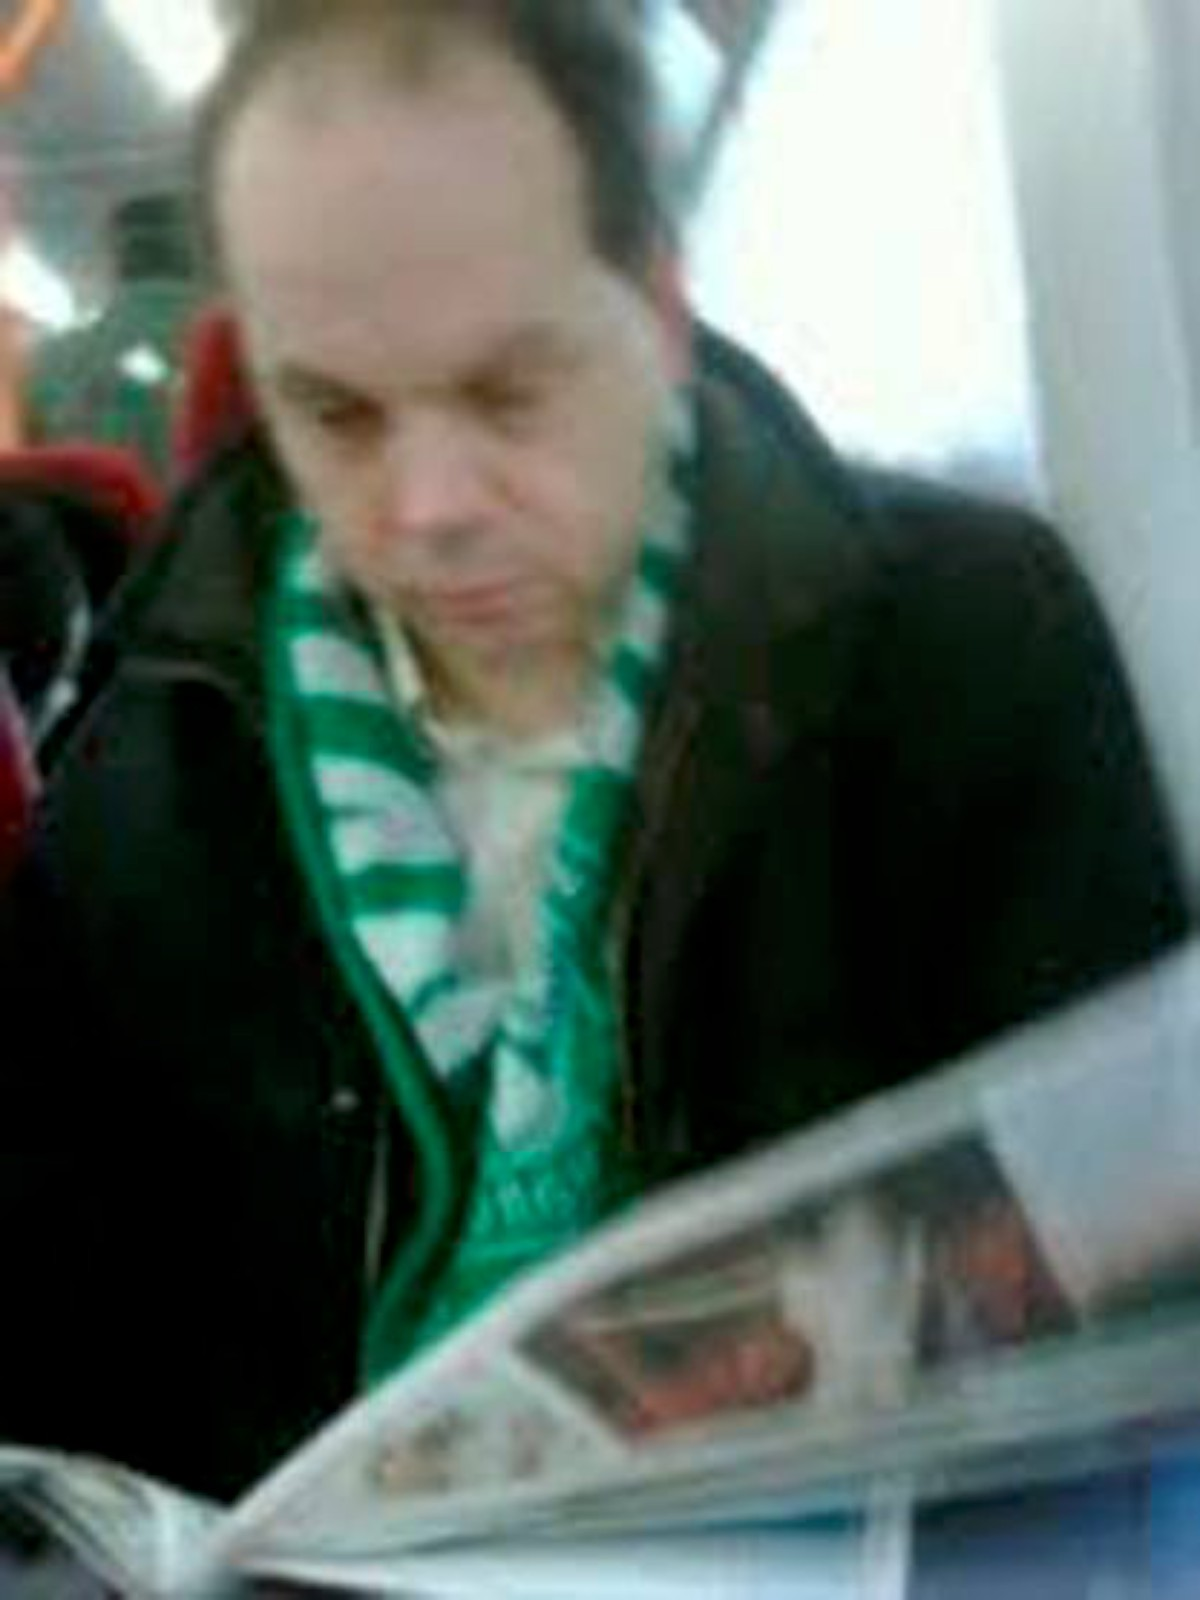 Dan Falchikov was photographed in 2010 on a train by Labour leaning political editor Kevin Maguire 'boasting' about the Save Kingston Hospital campaign